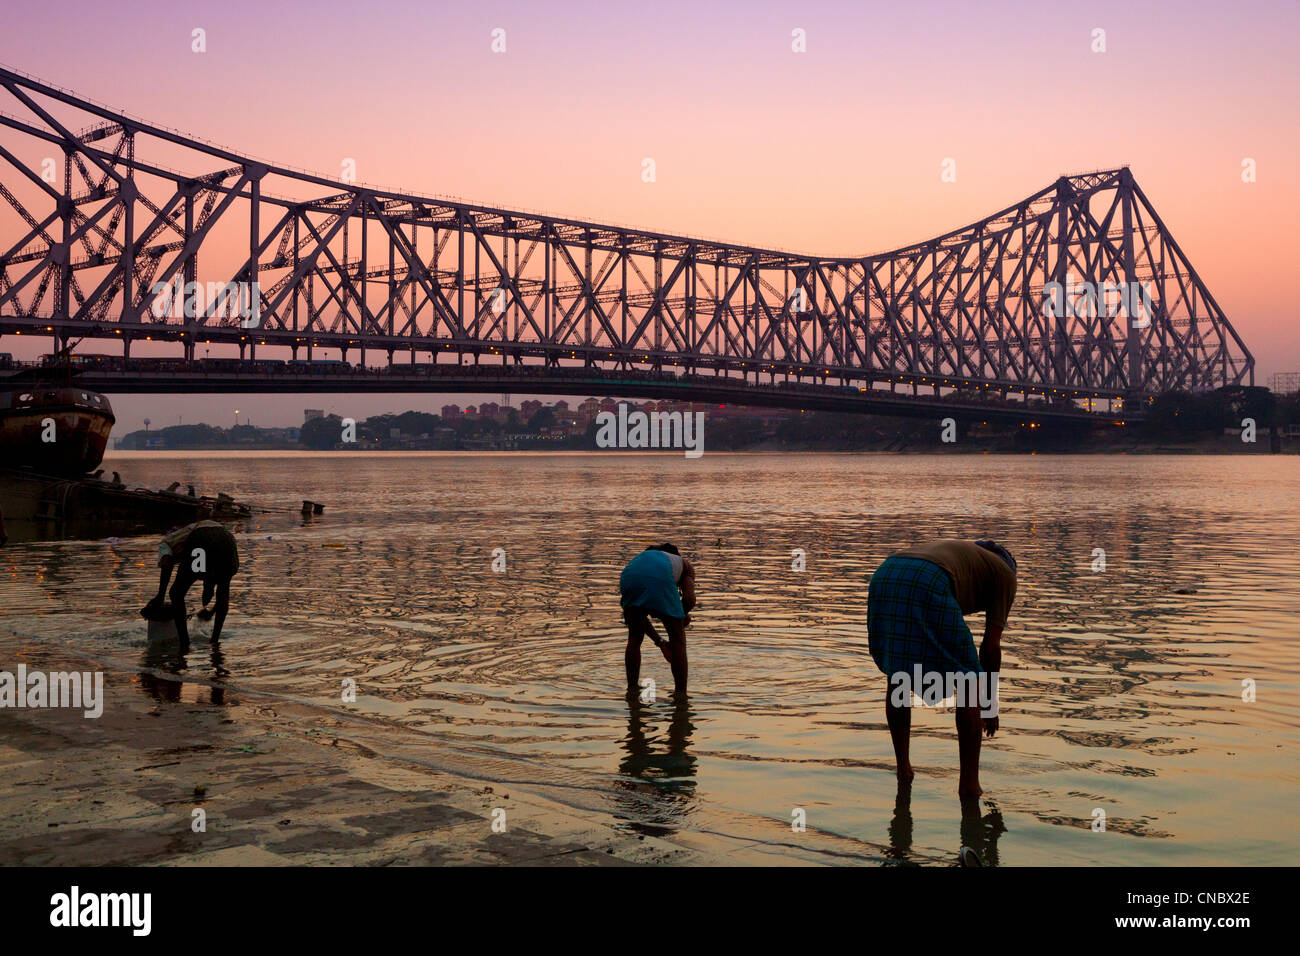 India, West Bengal, Kolkata (calcutta), family cleaning cooking utensils in the Hooghly river with Howrah suspension - Stock Image